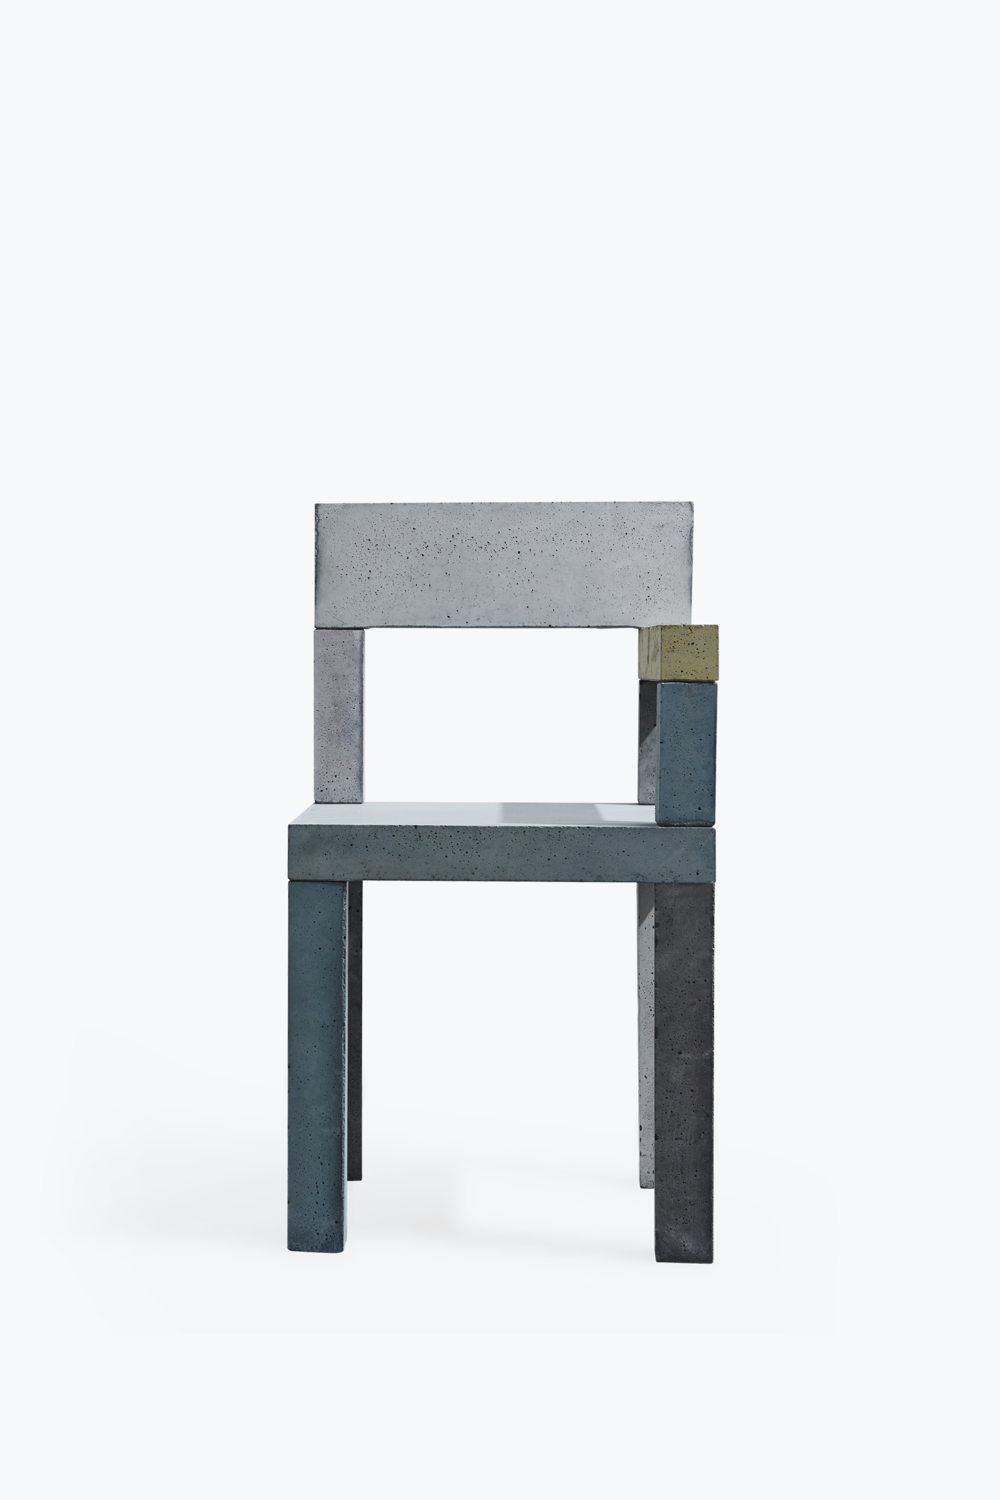 & Untitled (Concrete Chair) u2014 New Works